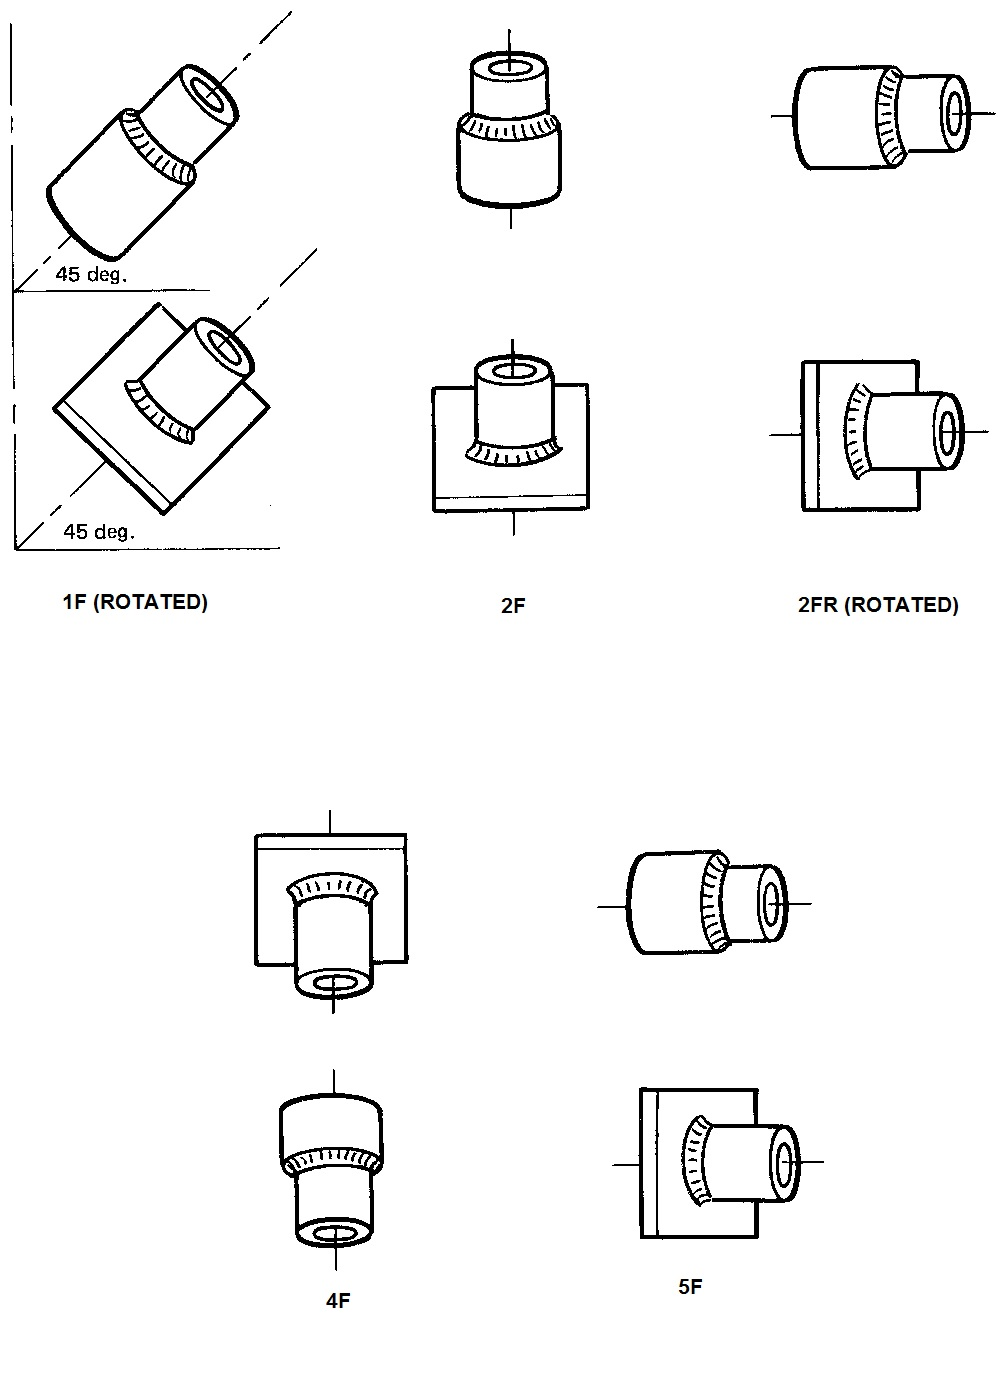 Welding Positions Diagram Wiring Diagrams Data Base Tig Machine Qaqcandinspection Com Rh On Process For Pipe At